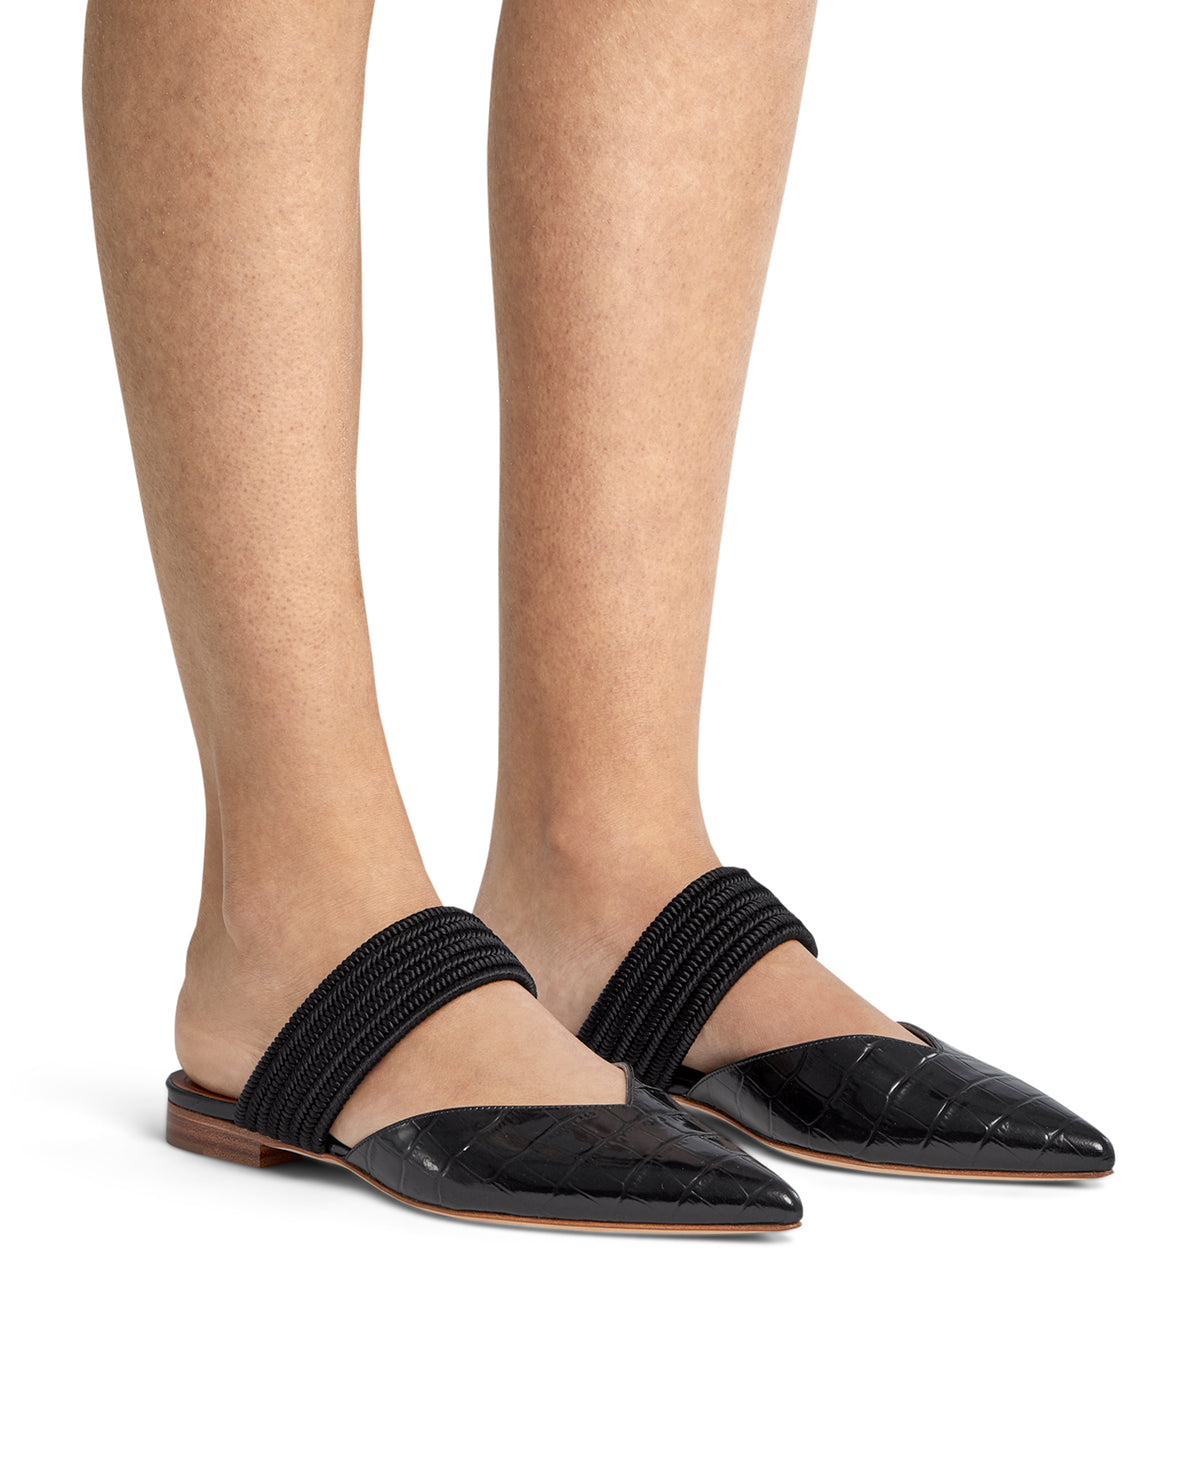 Maisie Flat - Black Croc Printed Leather